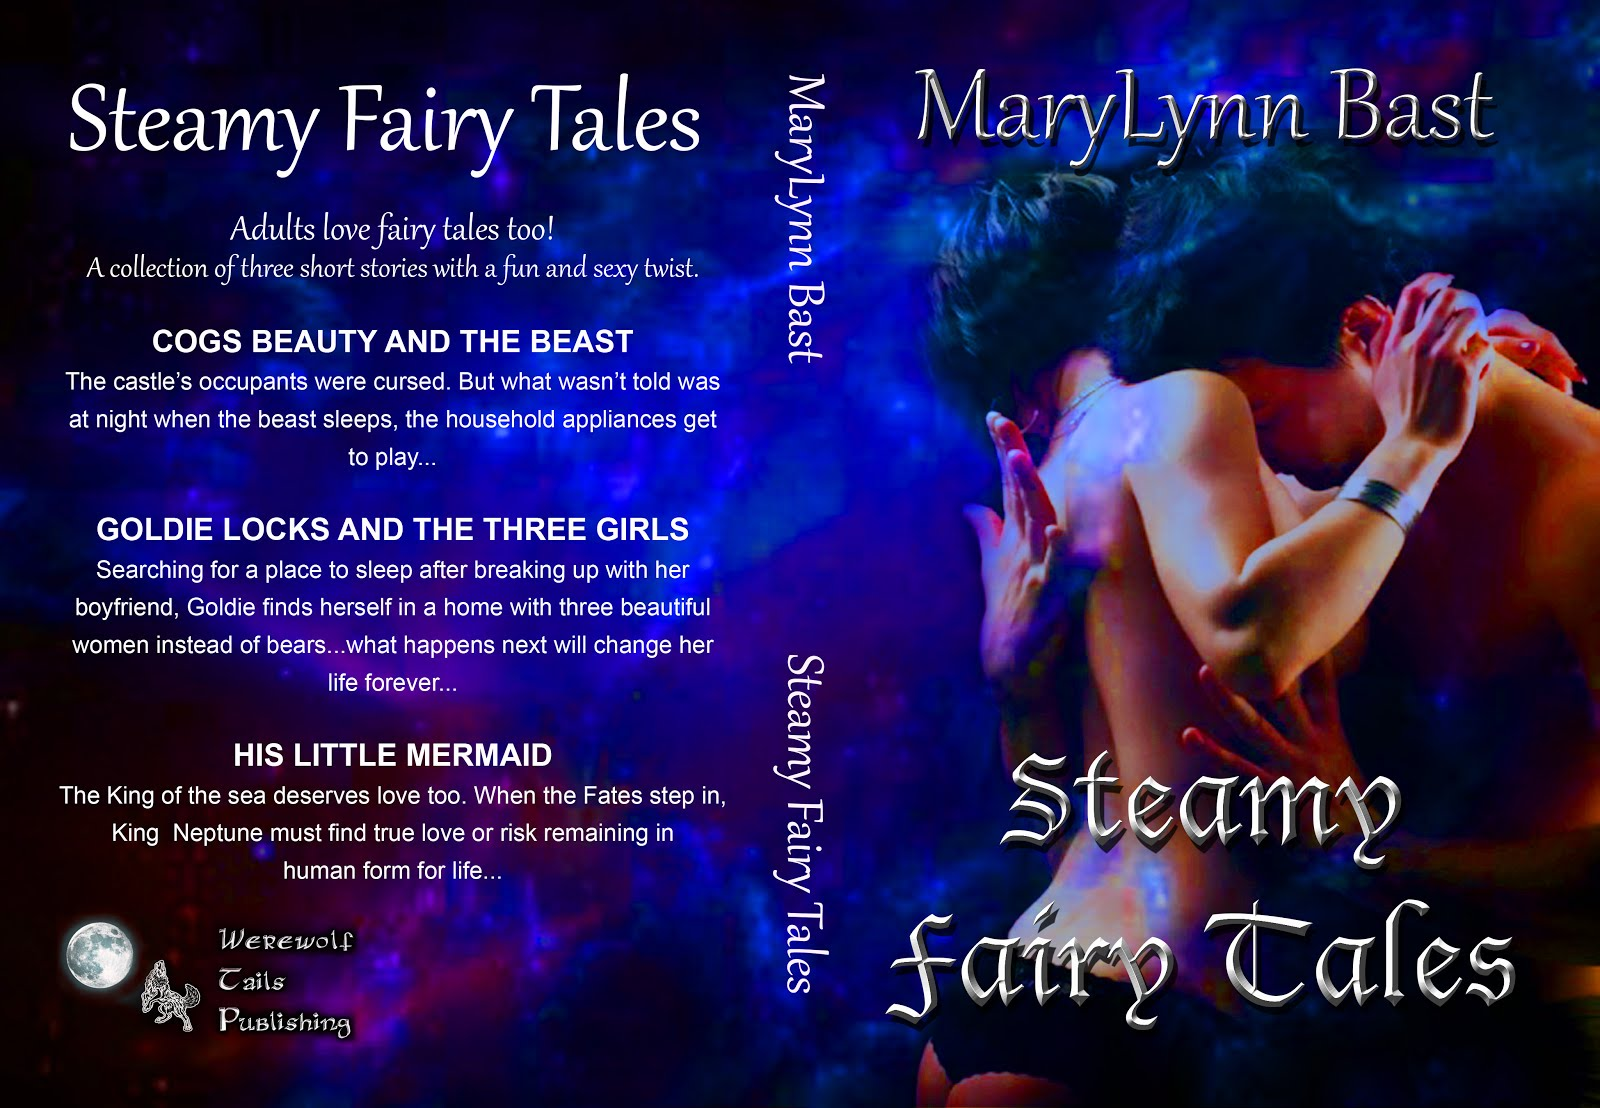 Steamy Fairy Tales